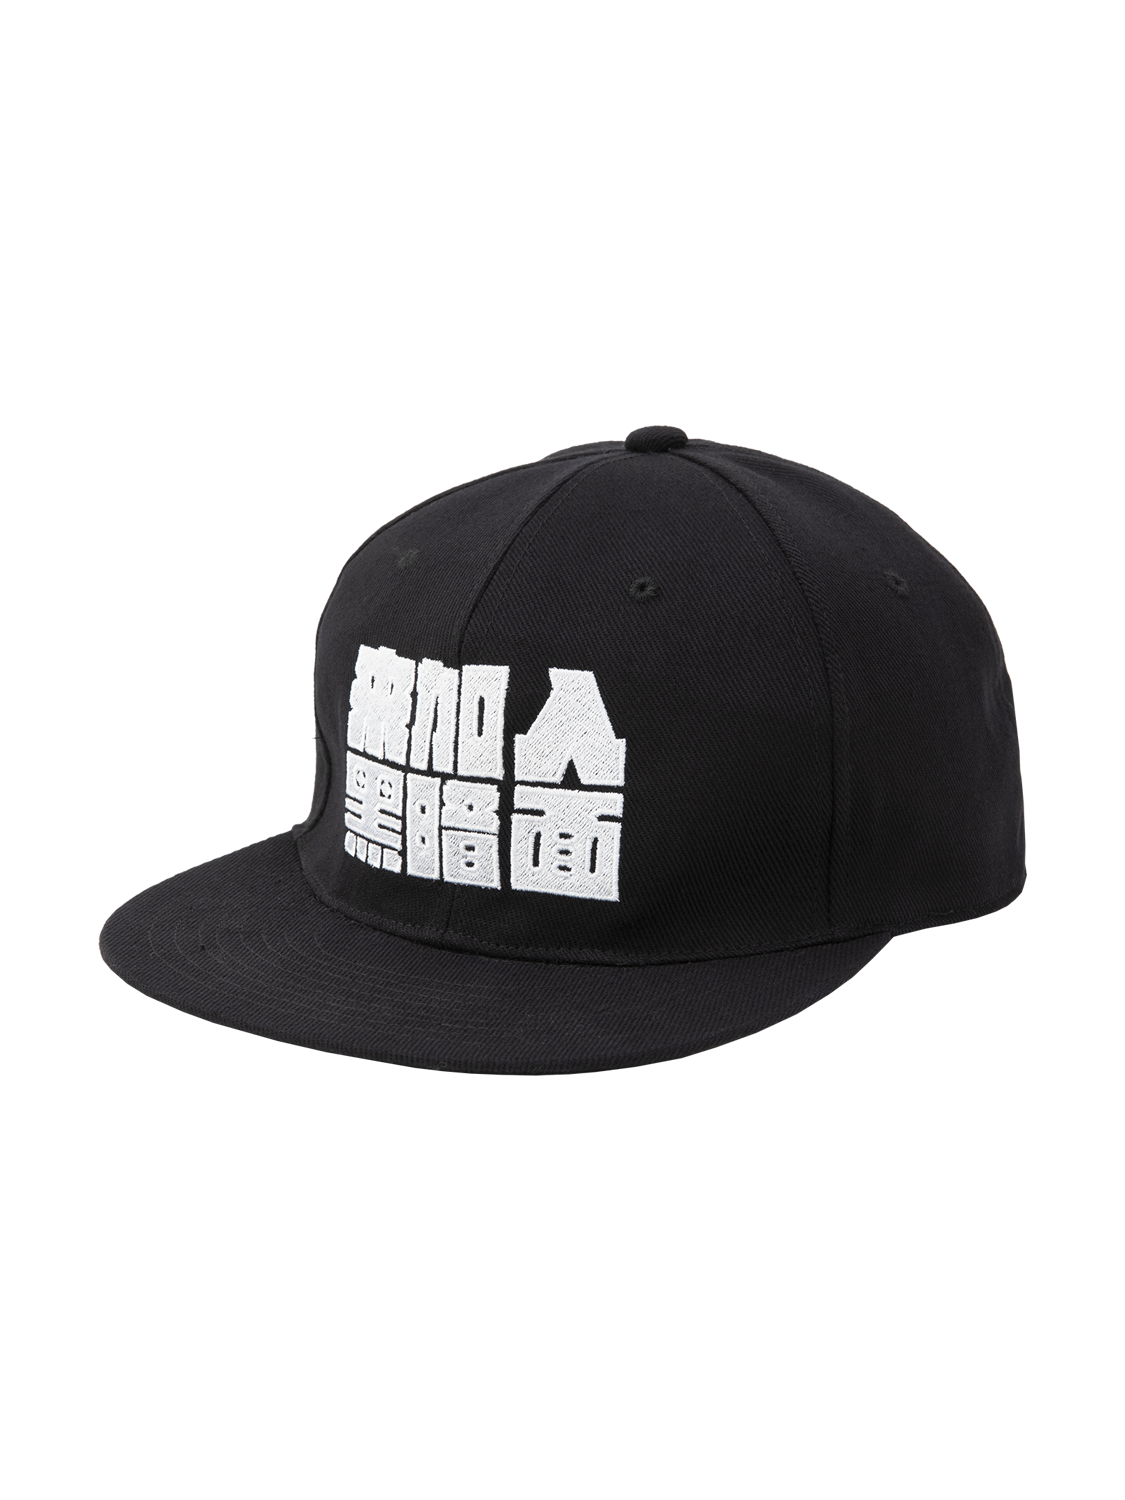 JOIN THE DARK SIDE SNAPBACK